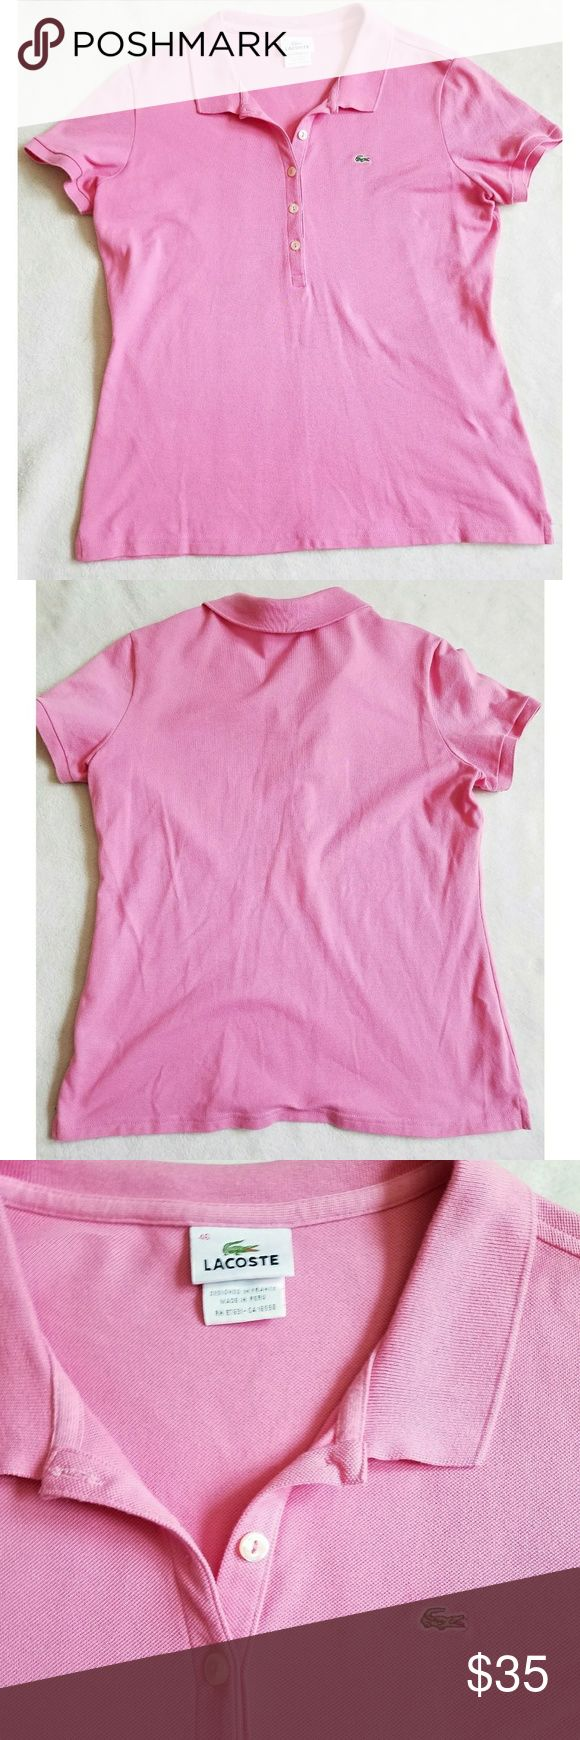 Lacoste pink polo Lacoste pink polo, size 46 ladies, measurements are APPROXIMATE in inches: Bust 19, length 24. EUC. *My items are NOT from a smoke free home* Lacoste Tops